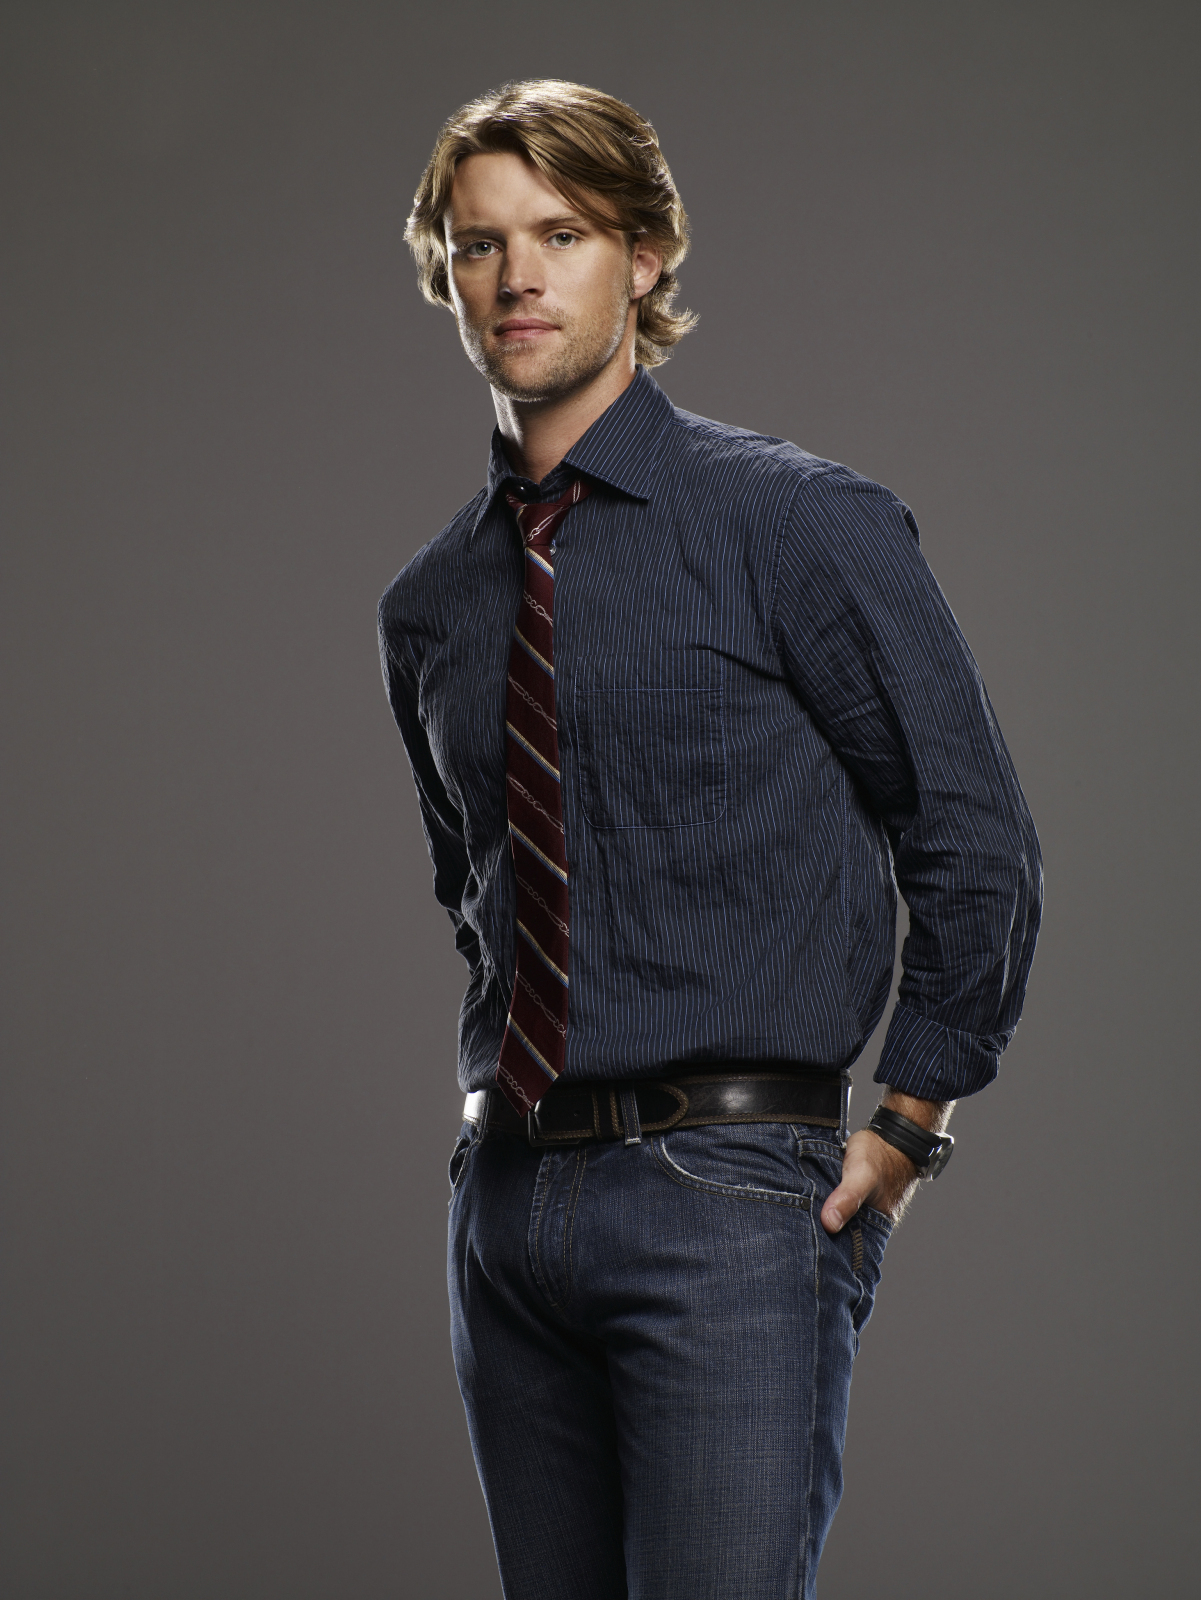 1201x1600 - Jesse Spencer Wallpapers 32